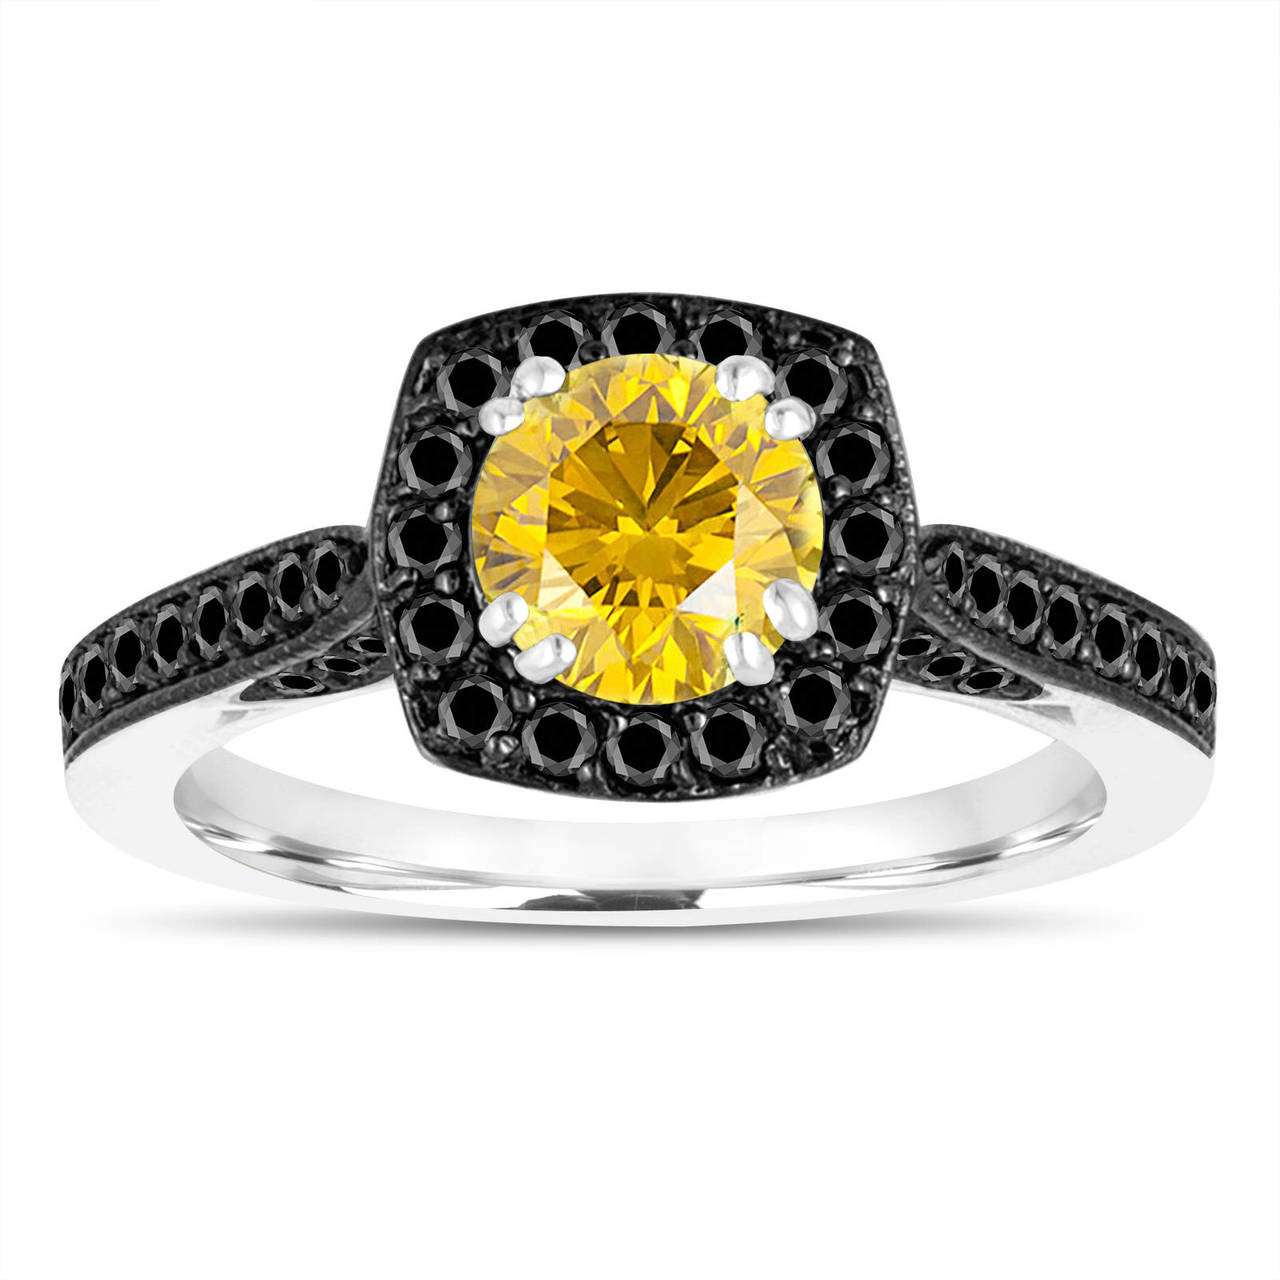 d3872d3bf2 1.21 Carat Canary Yellow Diamond Engagement Ring, With Black ...